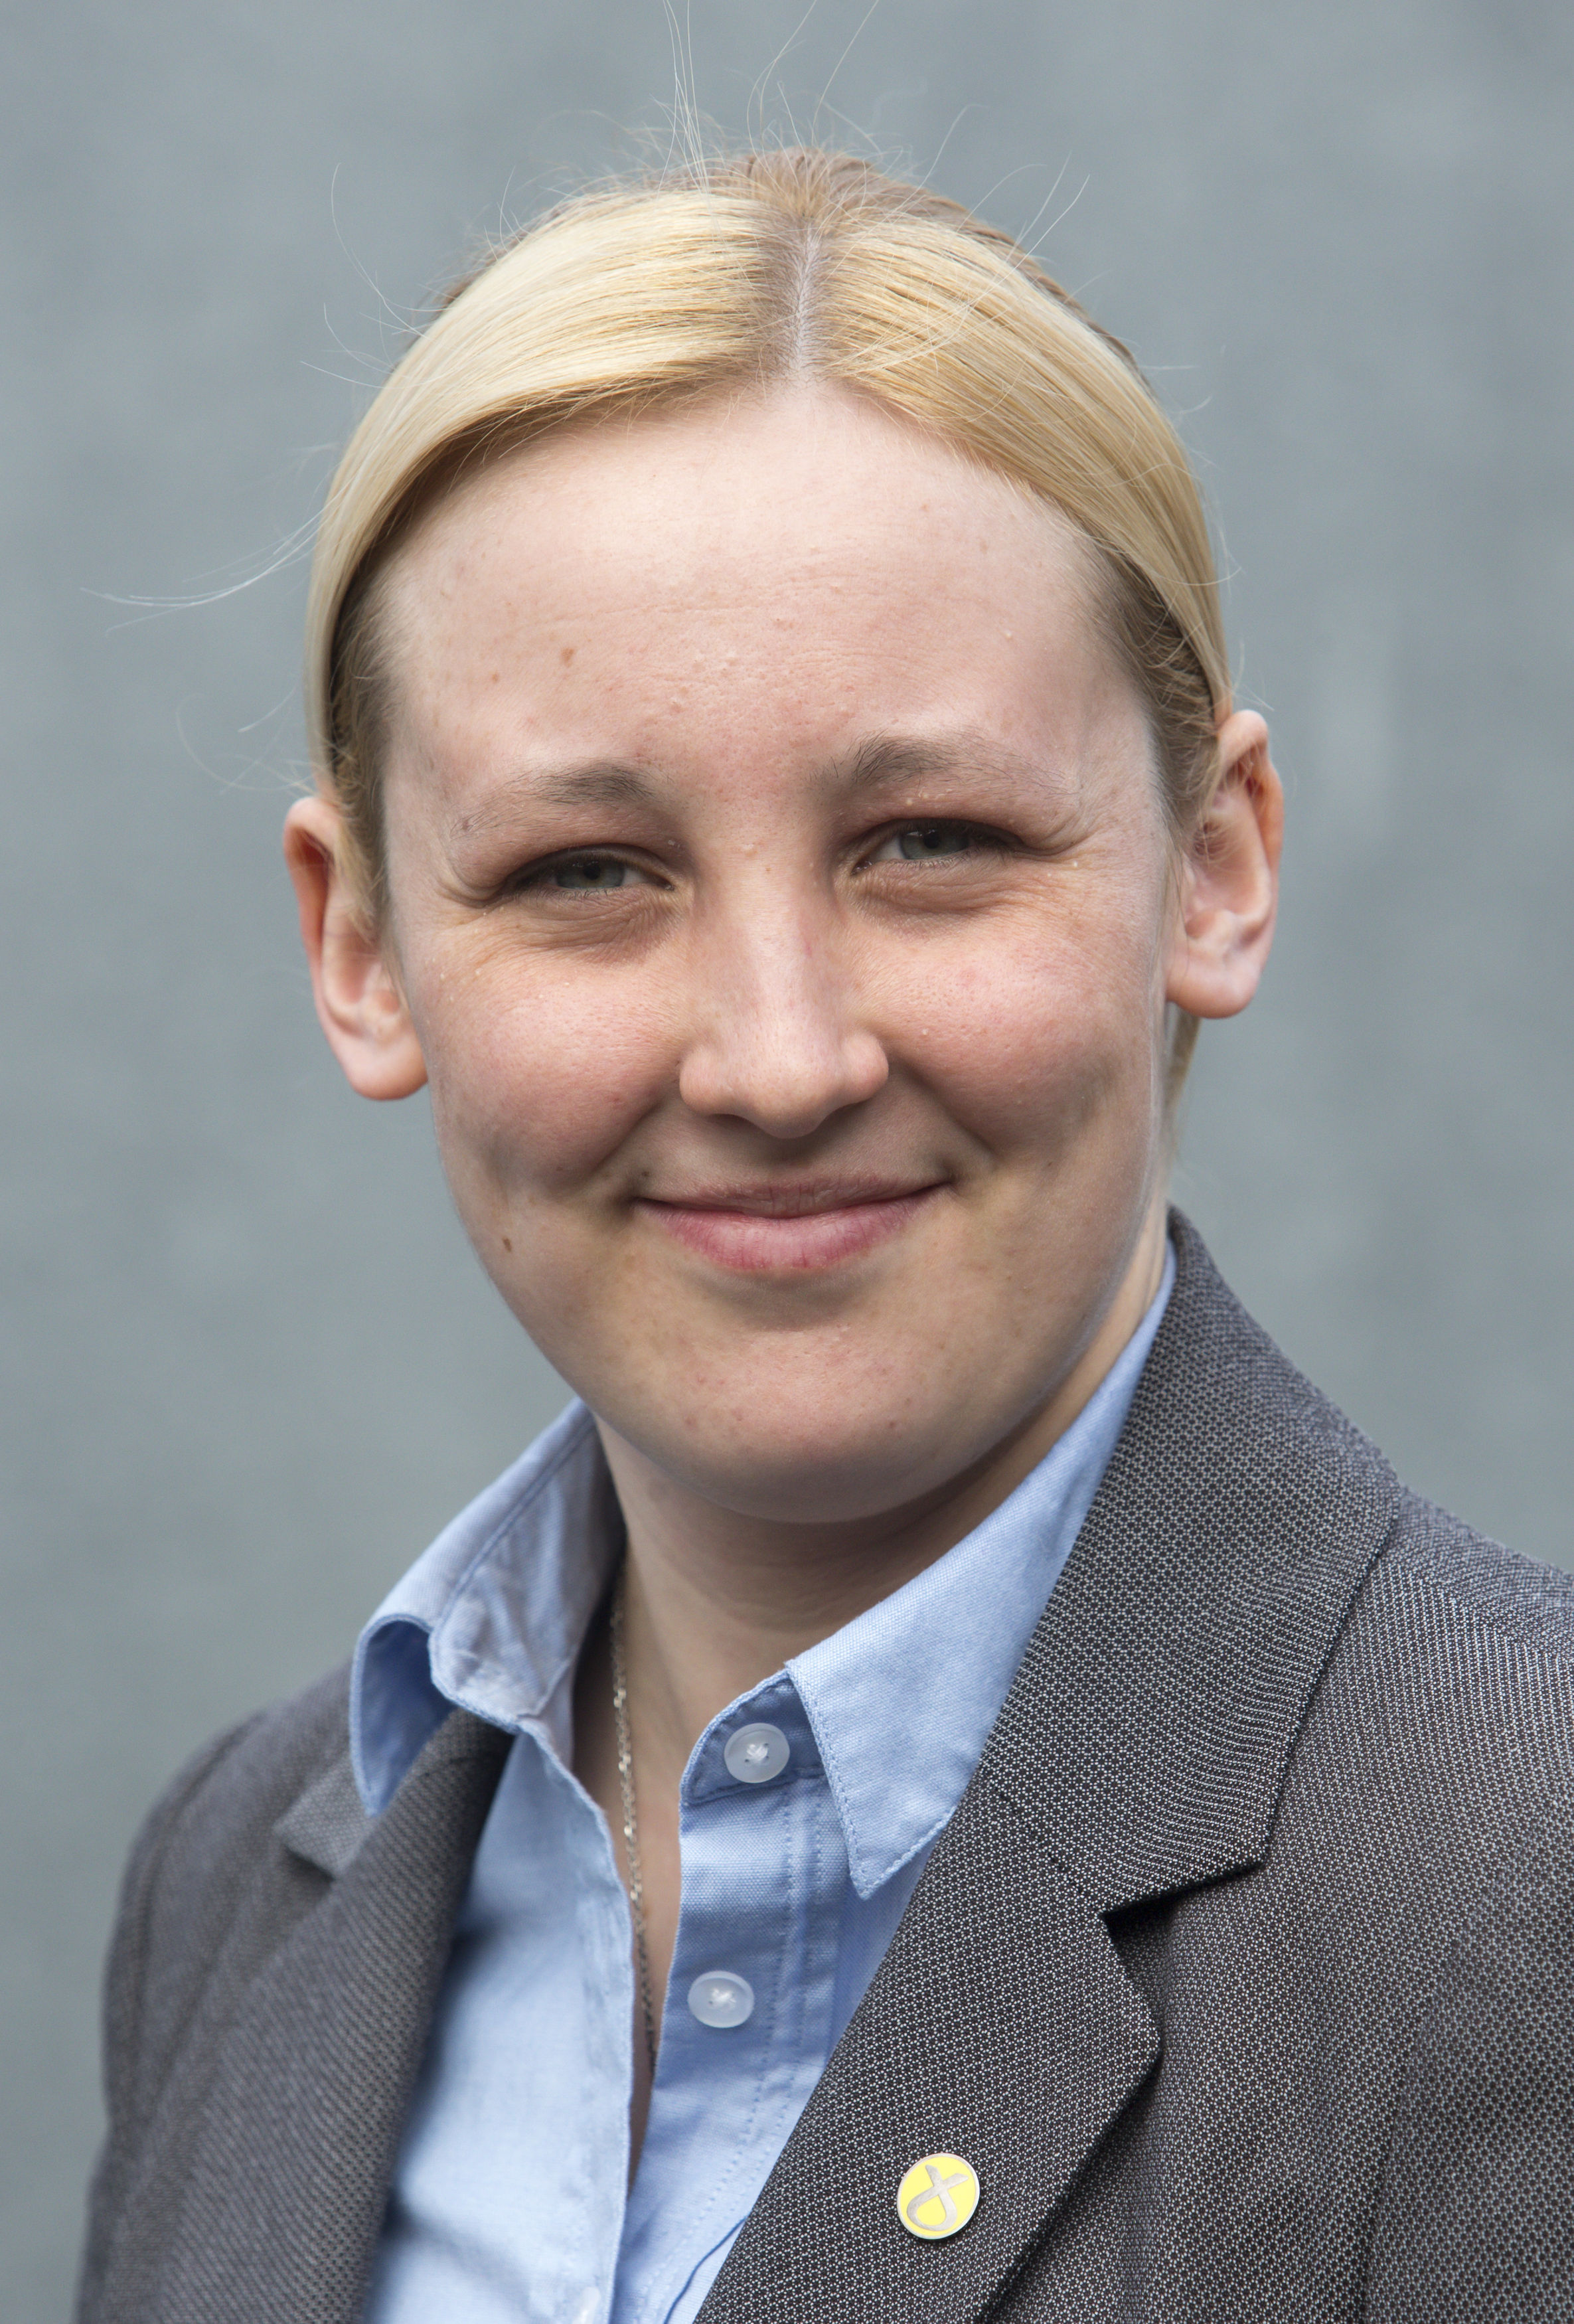 Mhairi Black MP: Westminister traditions are outdated, not family friendly and the union is doomed